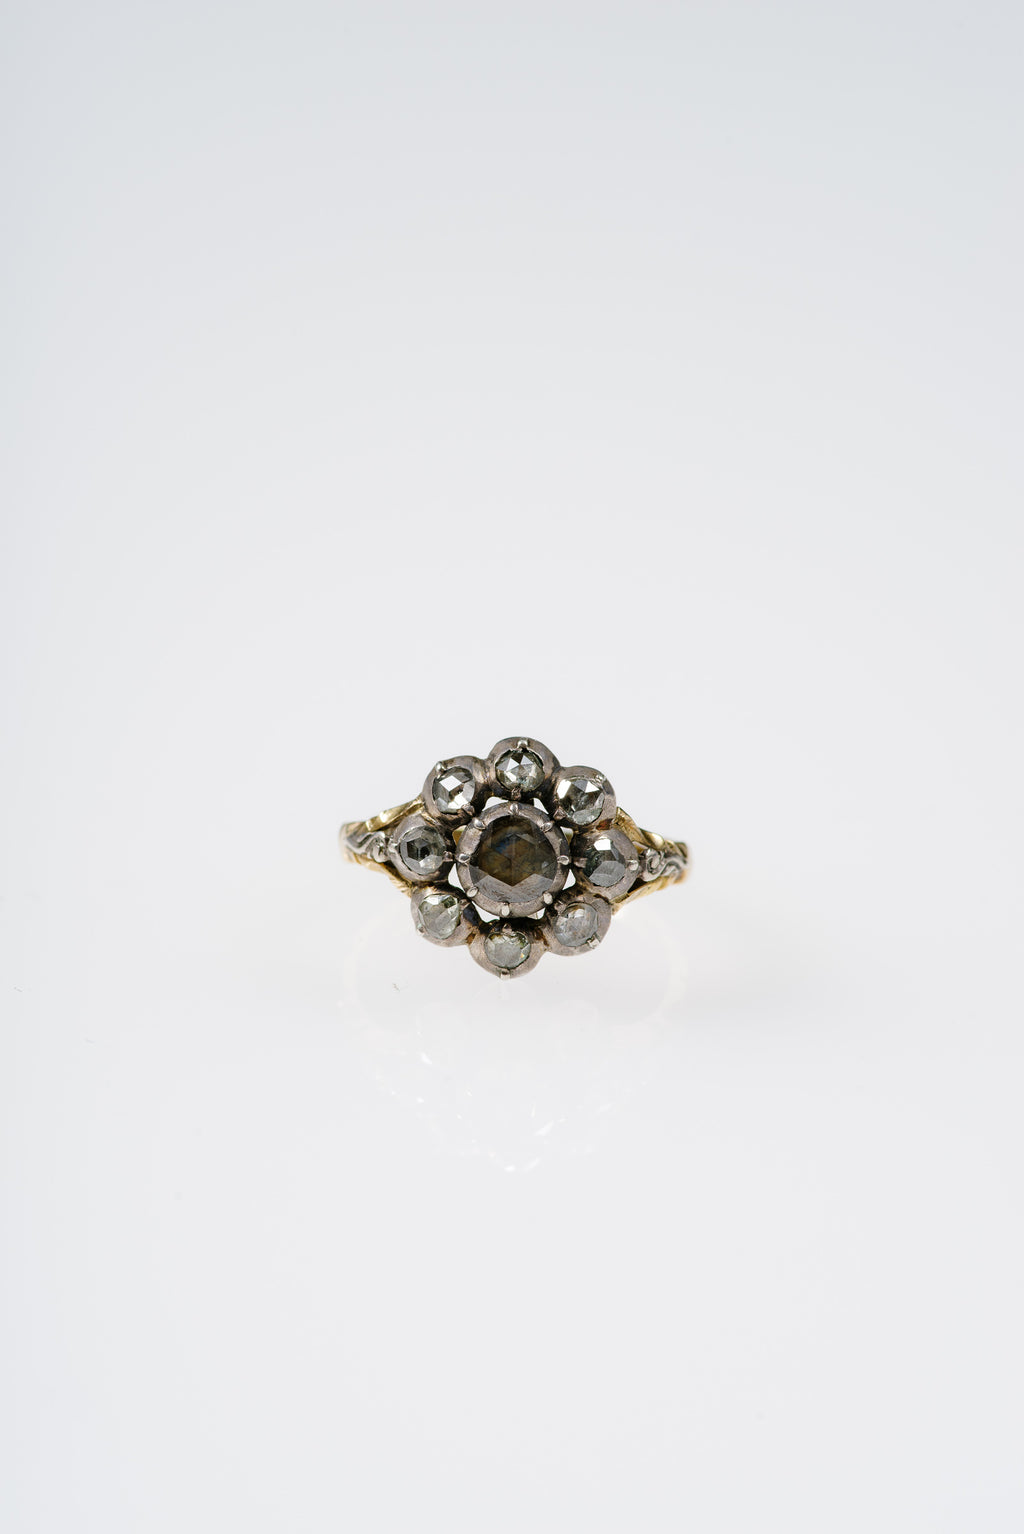 GEORGIAN ERA ROSECUT DIAMOND CLUSTER RING